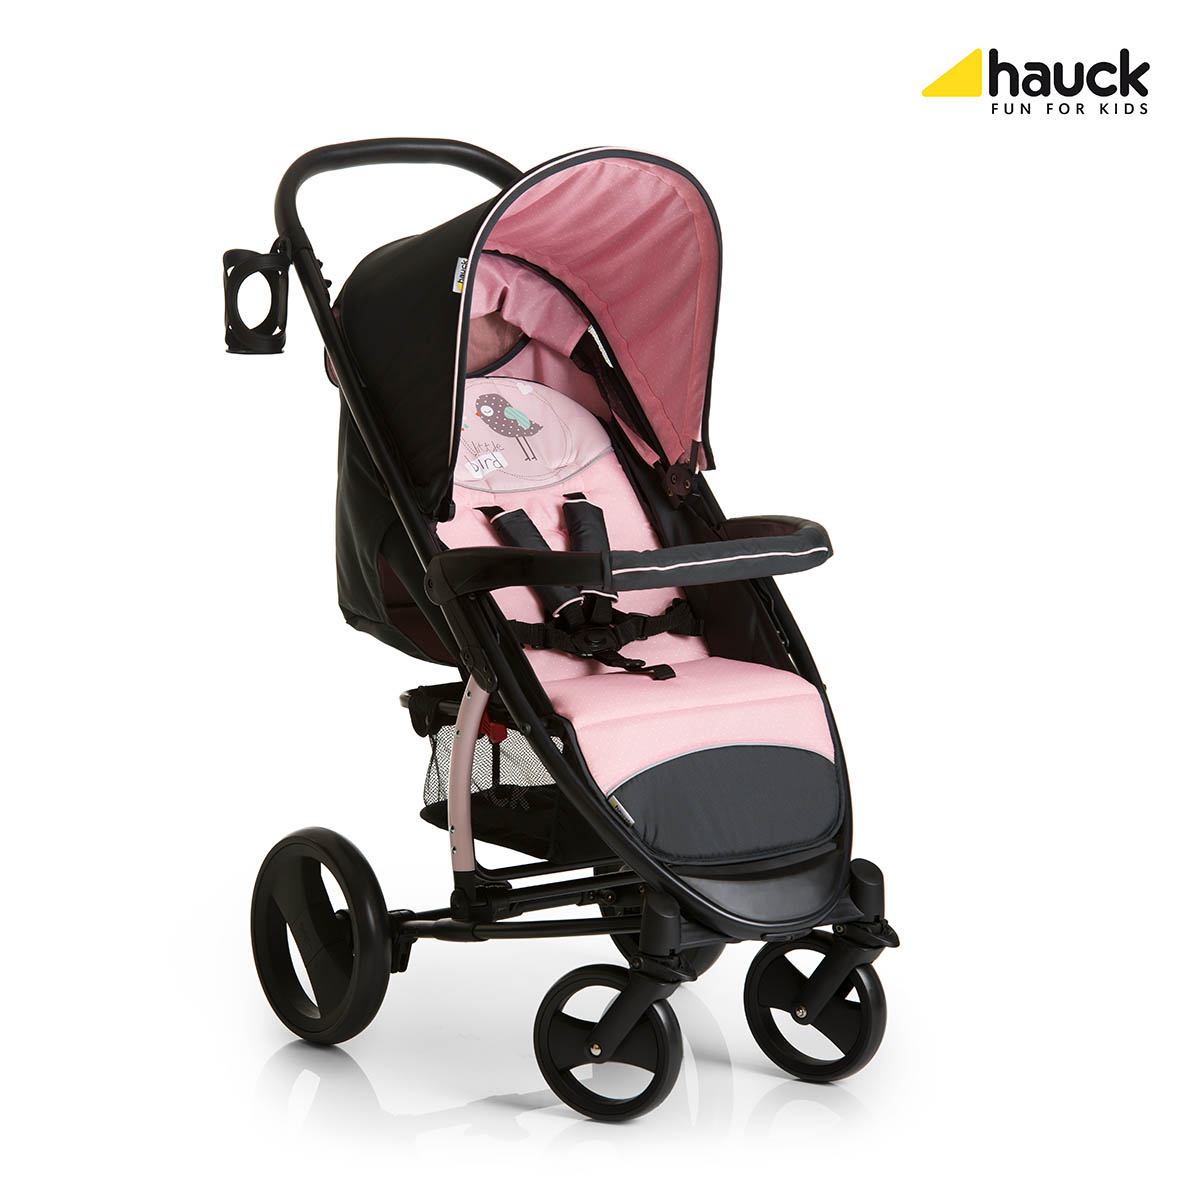 hauck pushchair malibu xl 2017 birdie buy at kidsroom. Black Bedroom Furniture Sets. Home Design Ideas